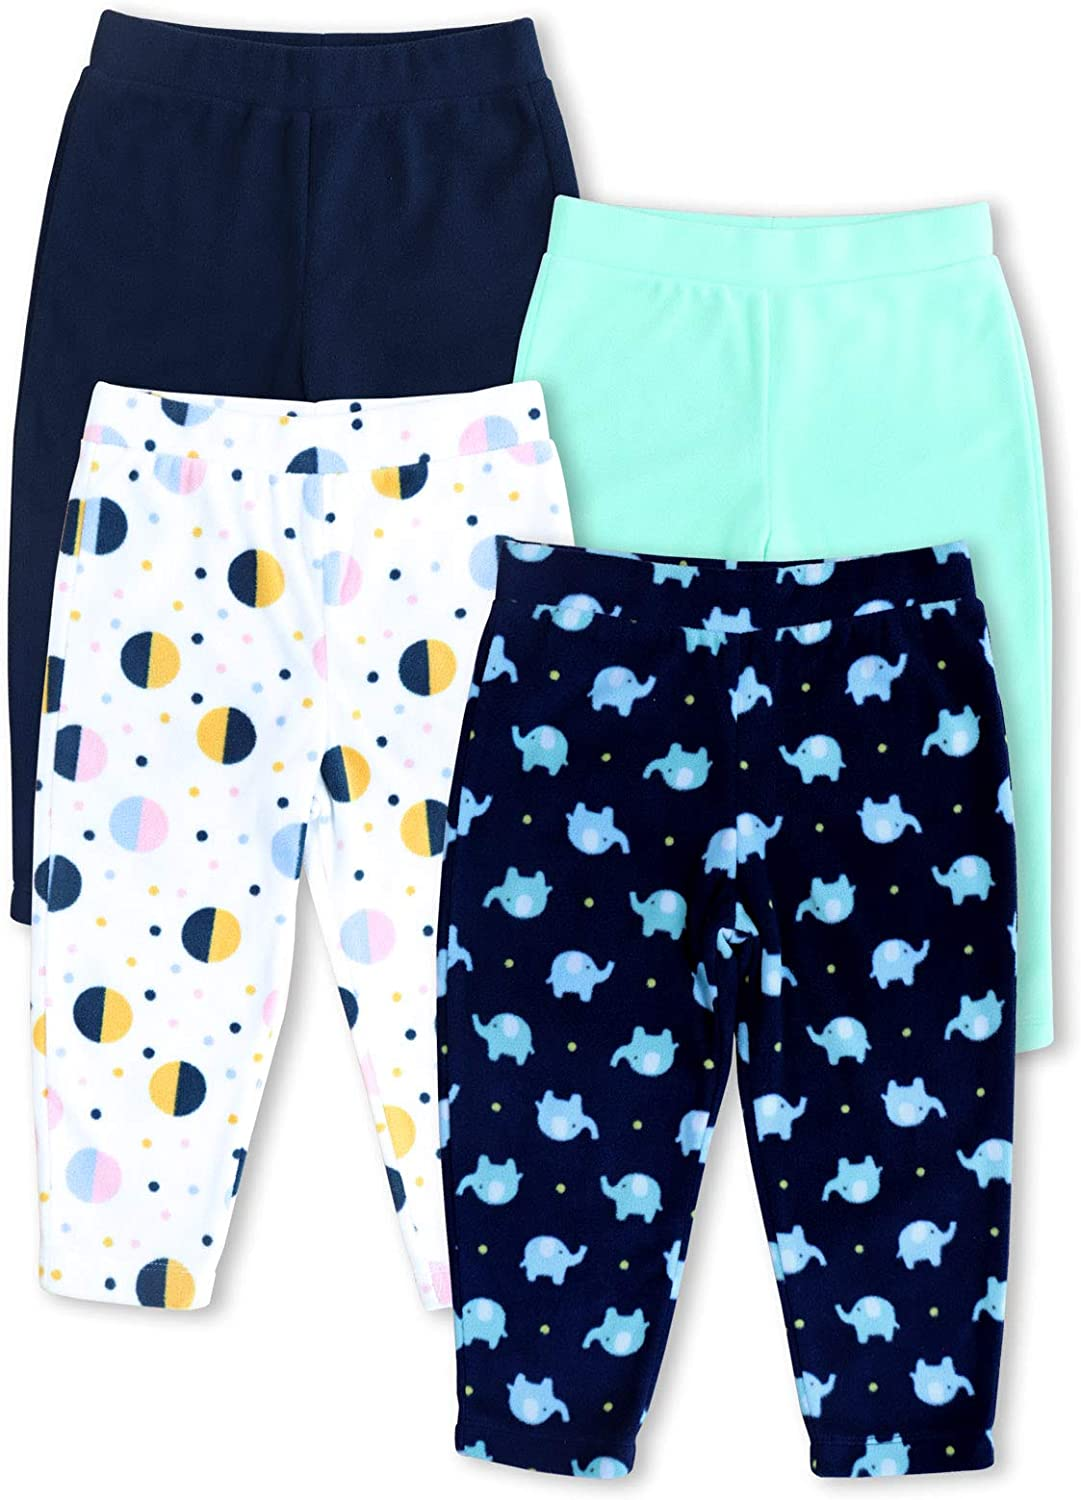 Size 3M - 5T GLASH Kids Baby and Toddler Boys Girls Unisex 4-Pack Fleece Pants